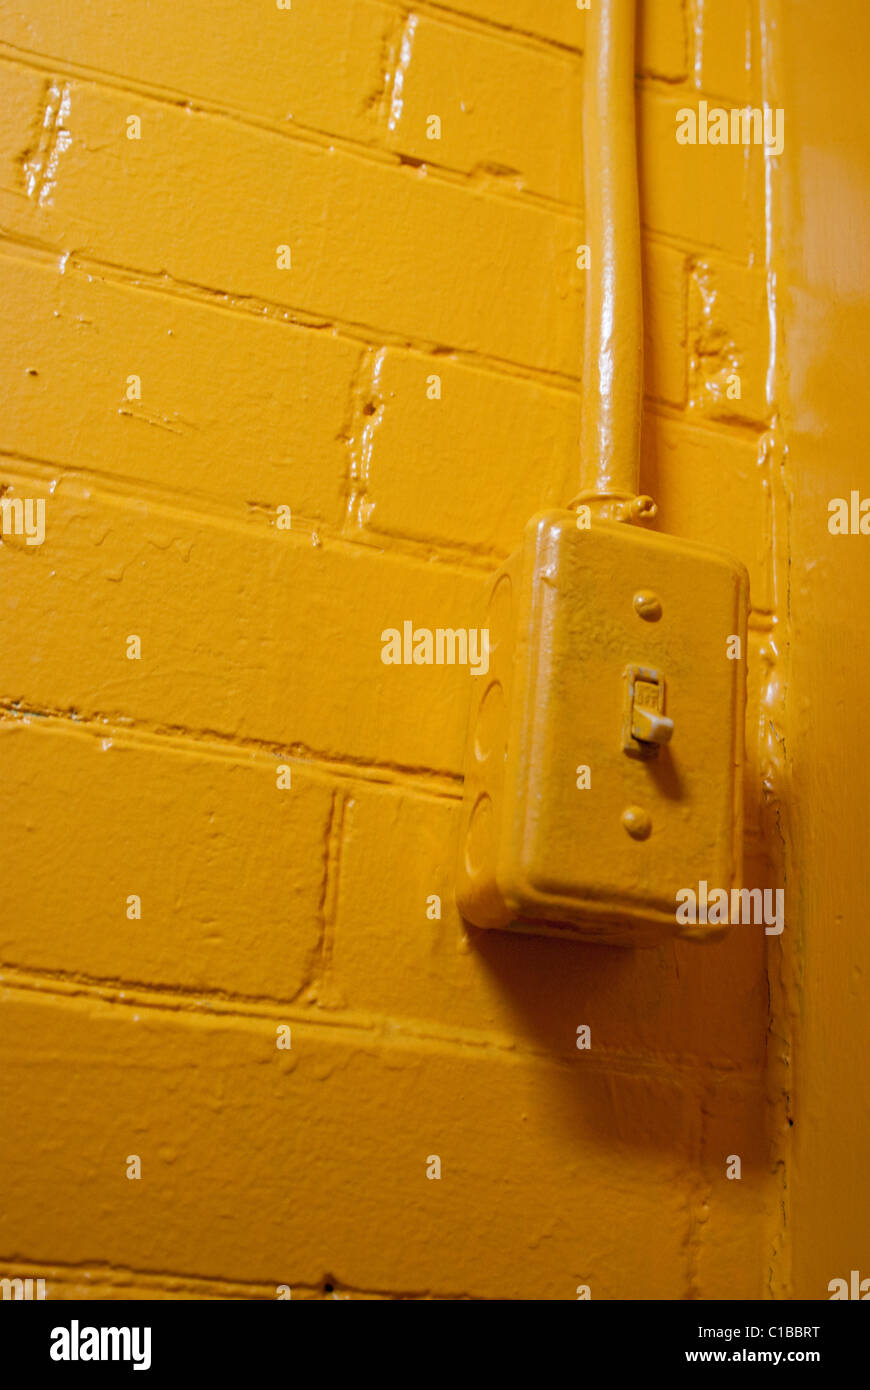 Industrial light switch painted yellow Stock Photo: 35286156 - Alamy